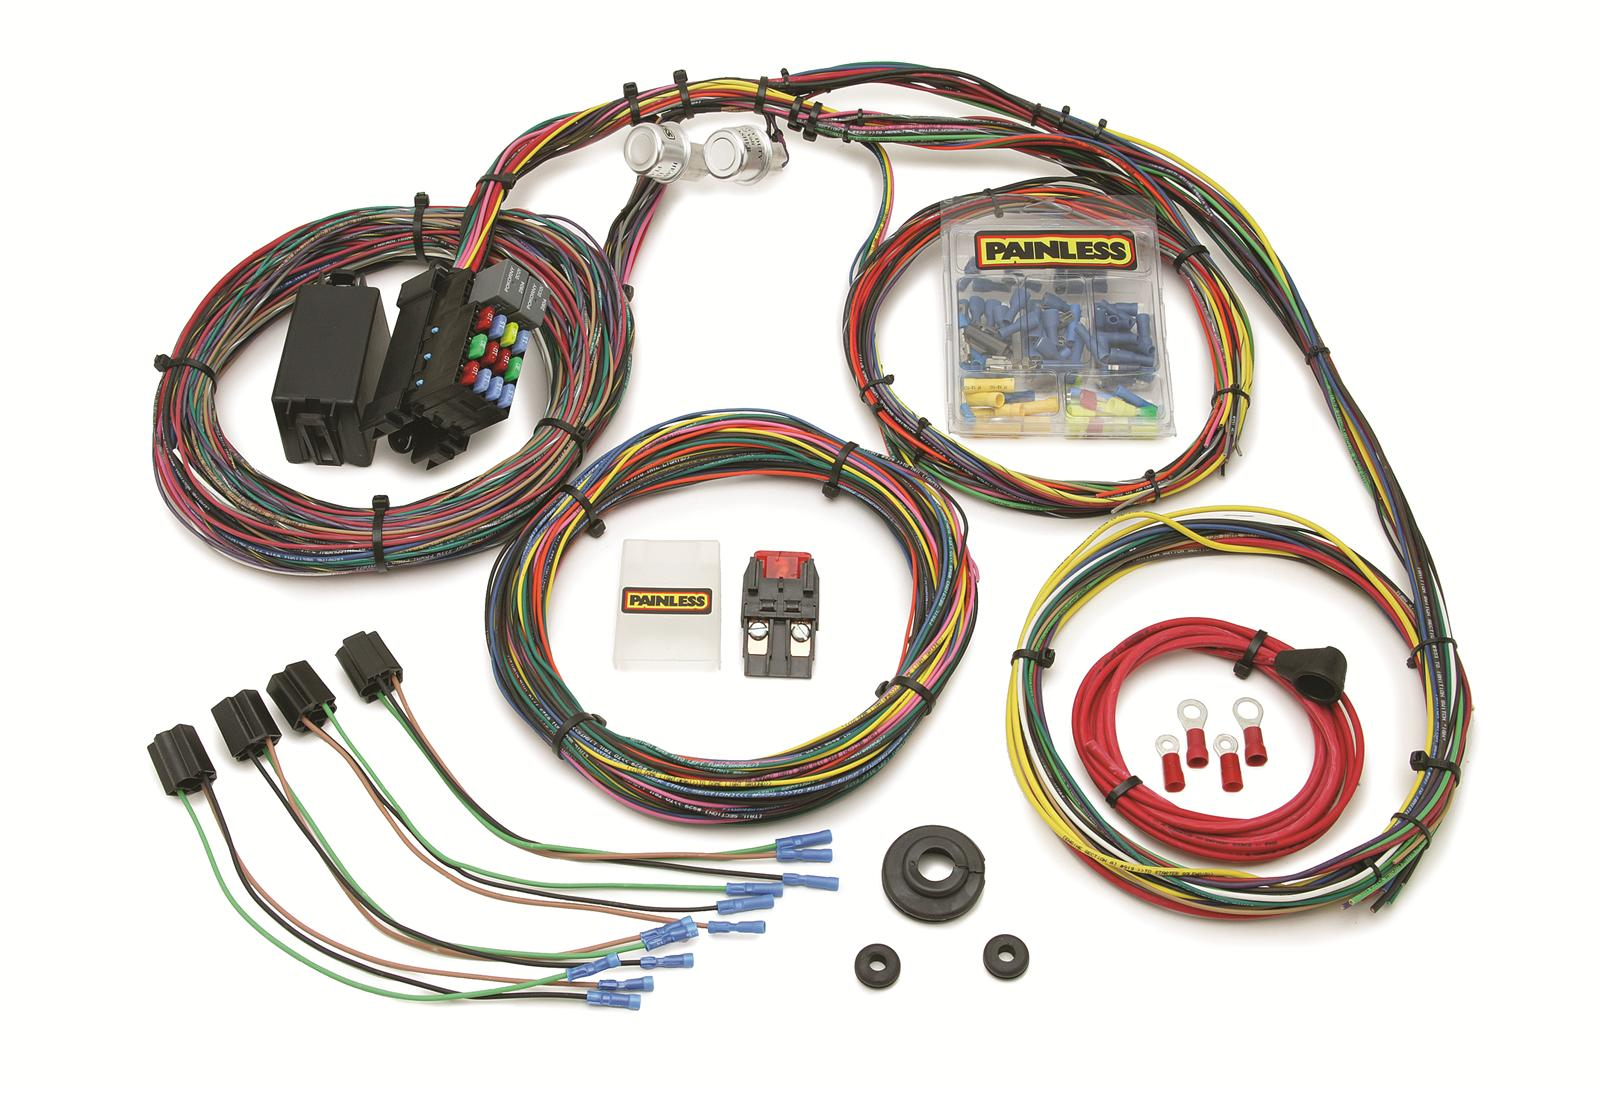 painless performance 21 circuit mopar color coded universal wiring harnesses 10127 18 Circuit Universal Wiring Harness